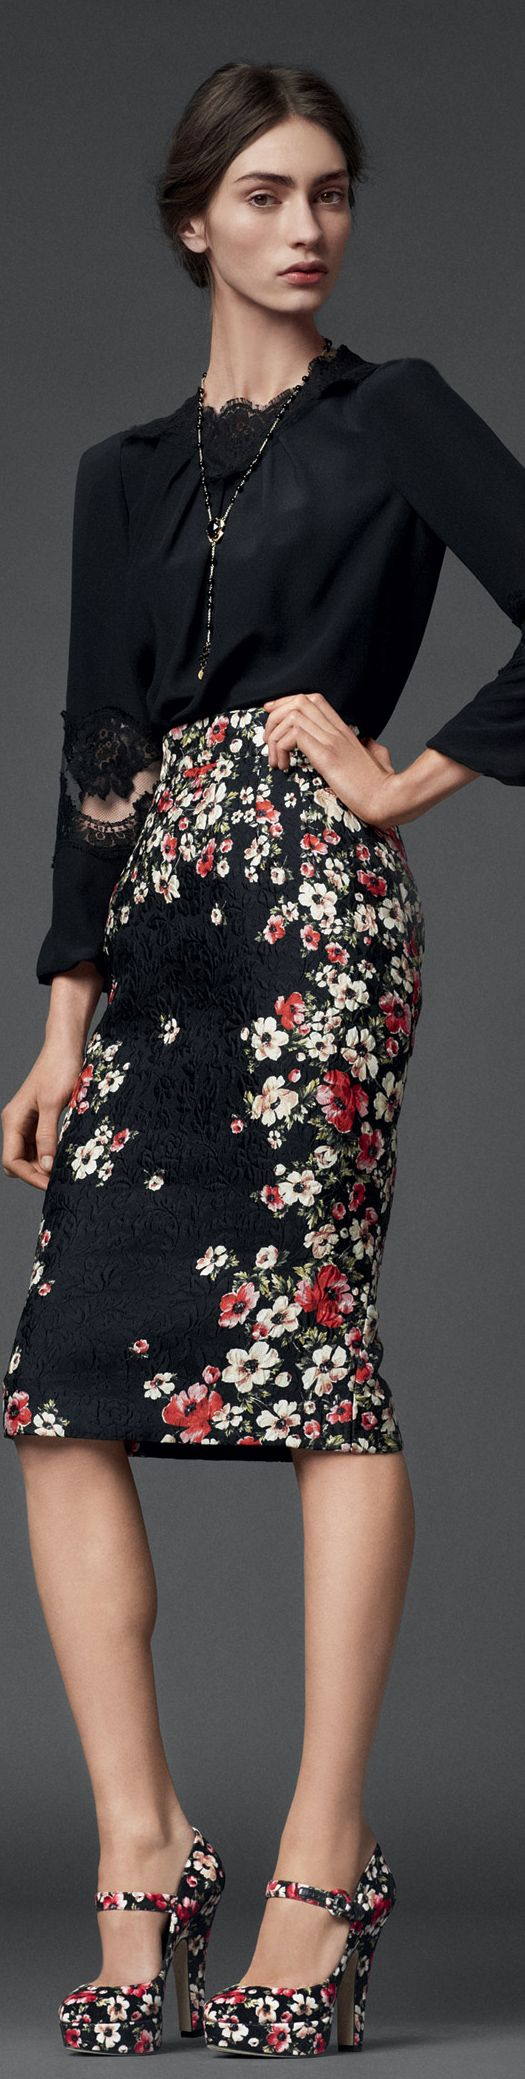 Dolce & Gabbana | Woman Collection 2014 ~ floral pencil skir\t & black lae detailed blouse